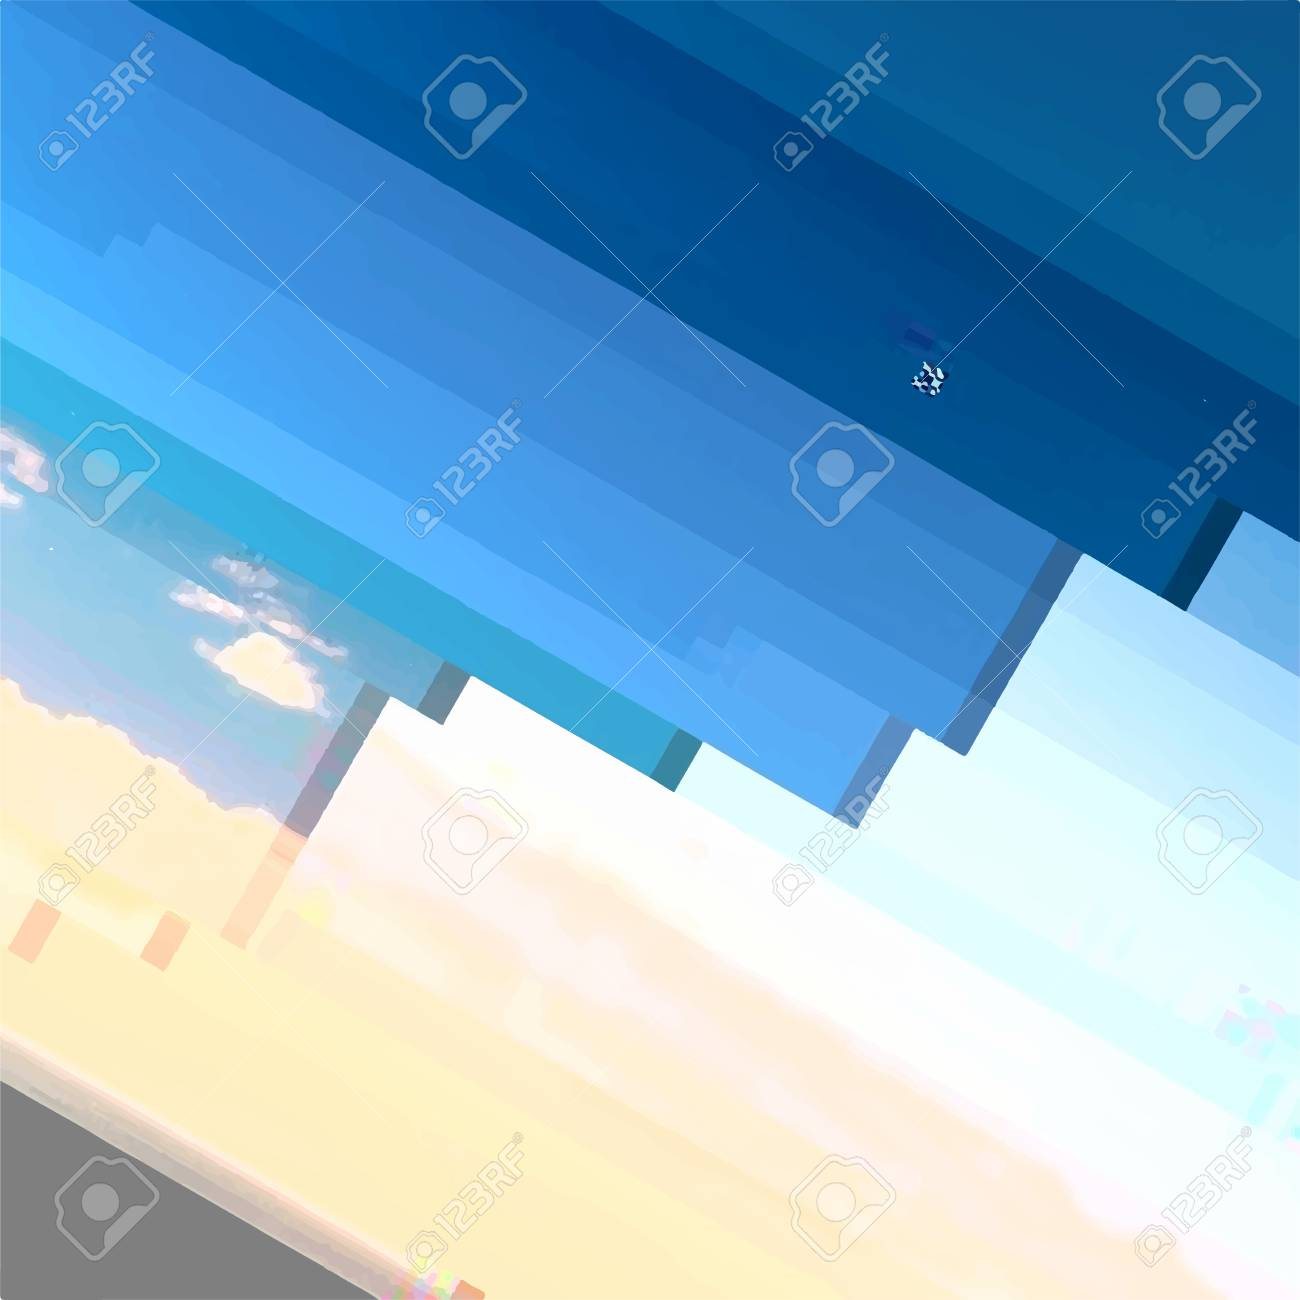 Abstract Glitch distress texture. Cyber hacker attack theme creative design template. Grunge glitched color pixel background. EPS10 vector - 123995094